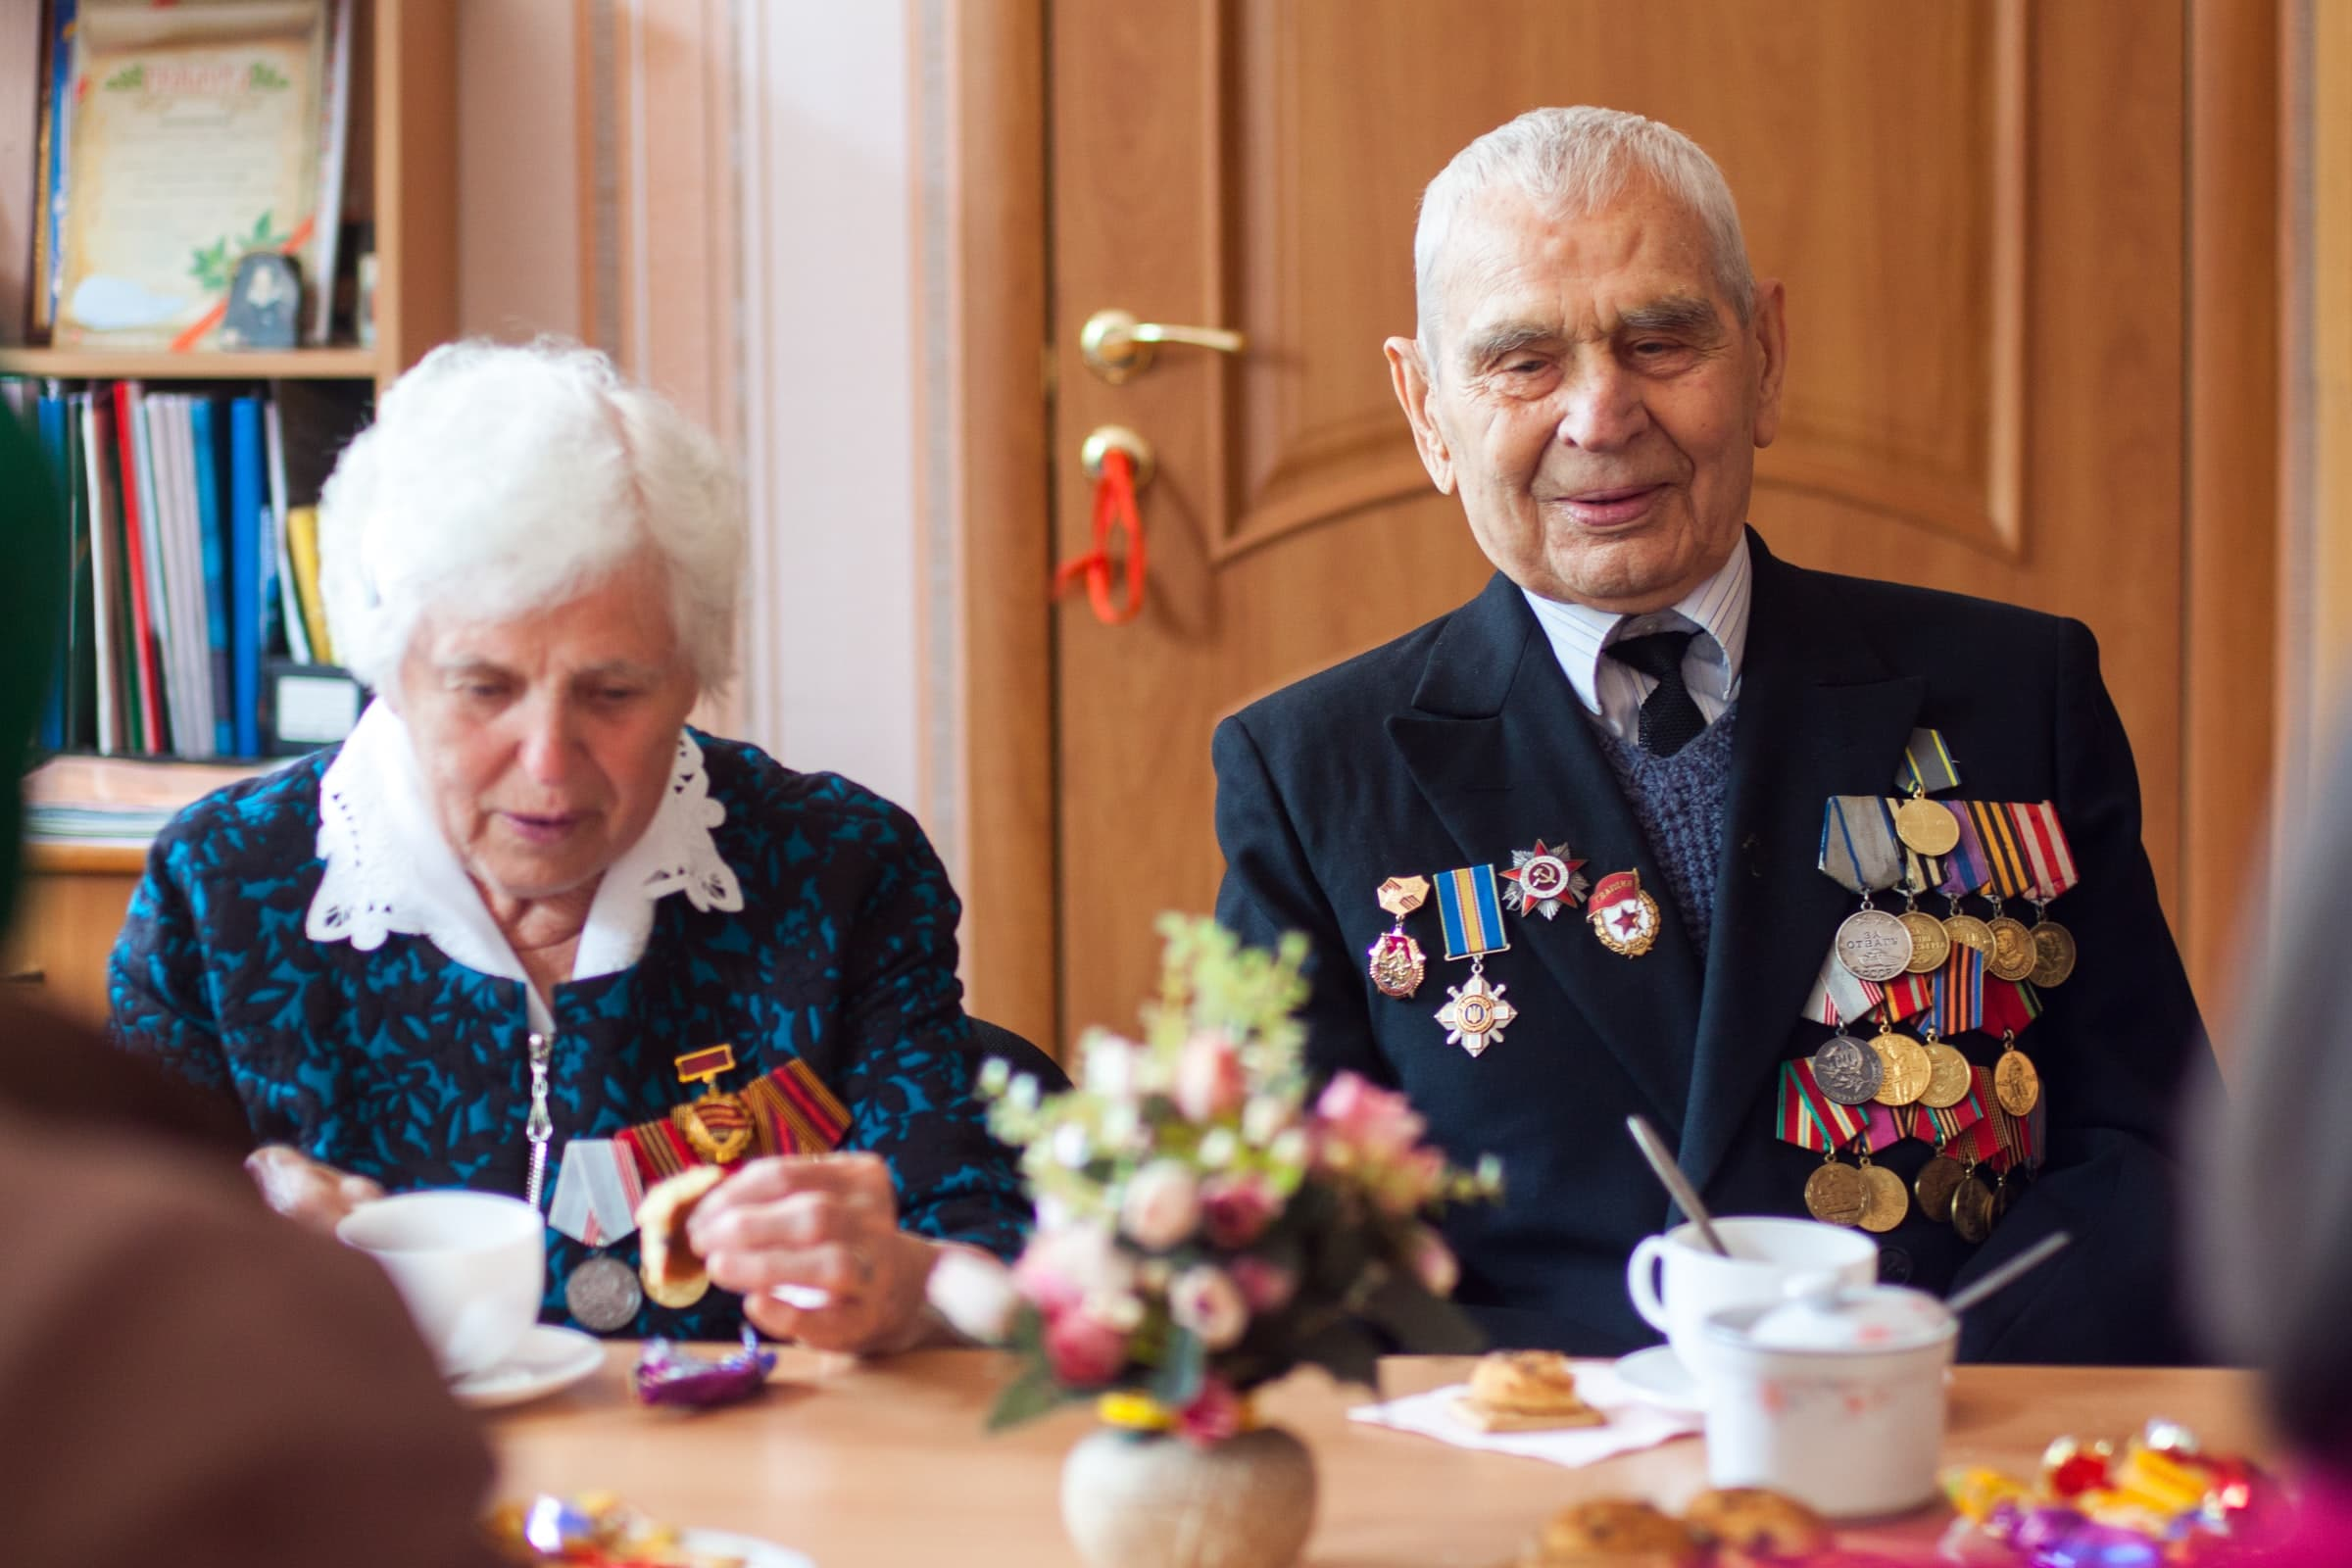 A veteran and his spouse eat breakfast